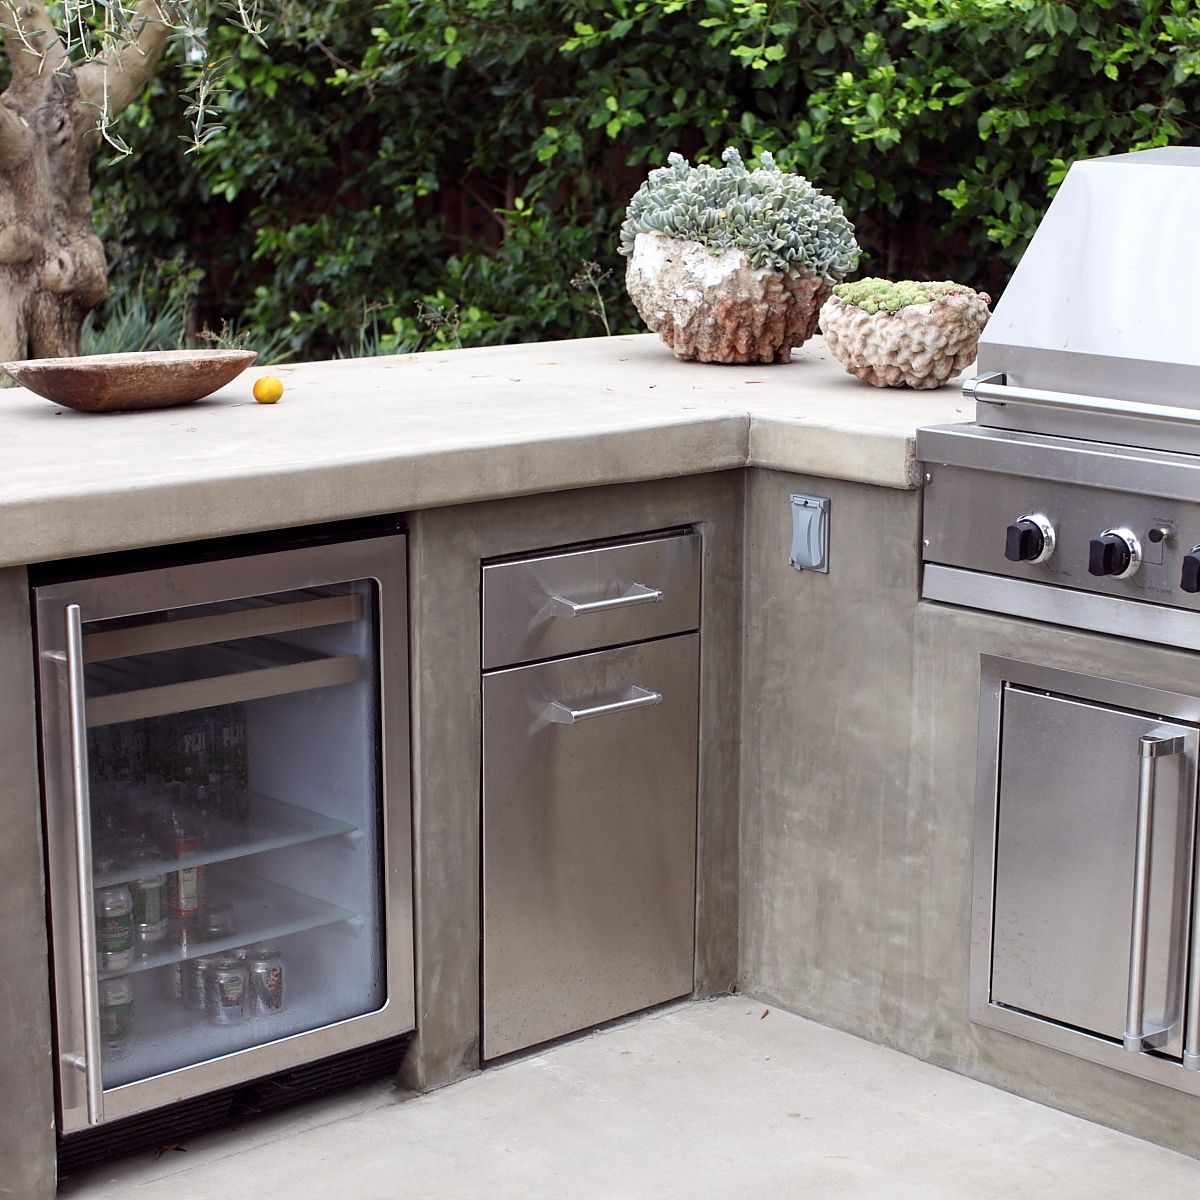 An Outdoor Fridge Is An Essential For A High End Built In